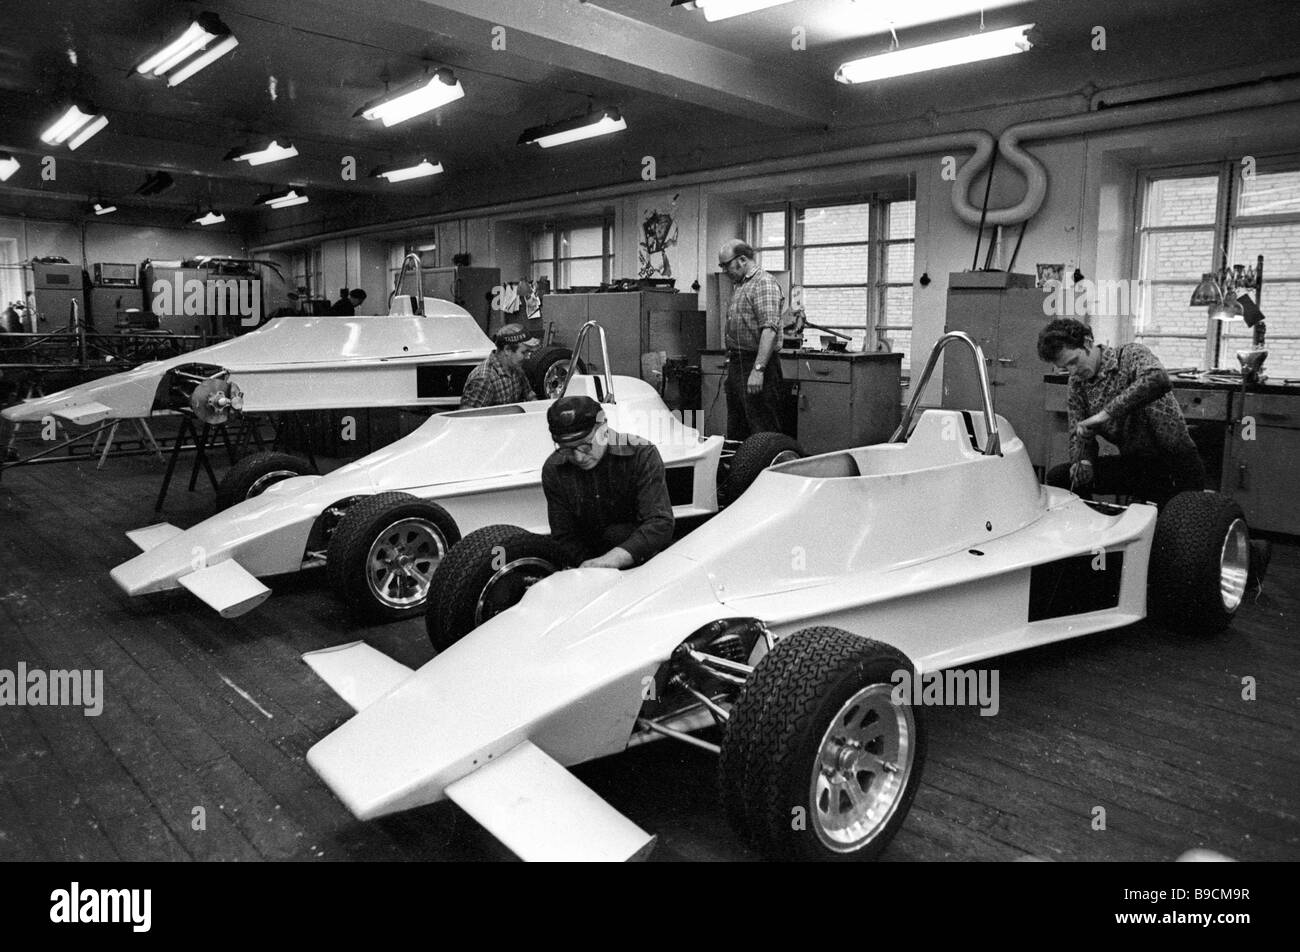 An assembly shop of racing cars Estonia 20 of the Tallinn auto repair integrated works - Stock Image